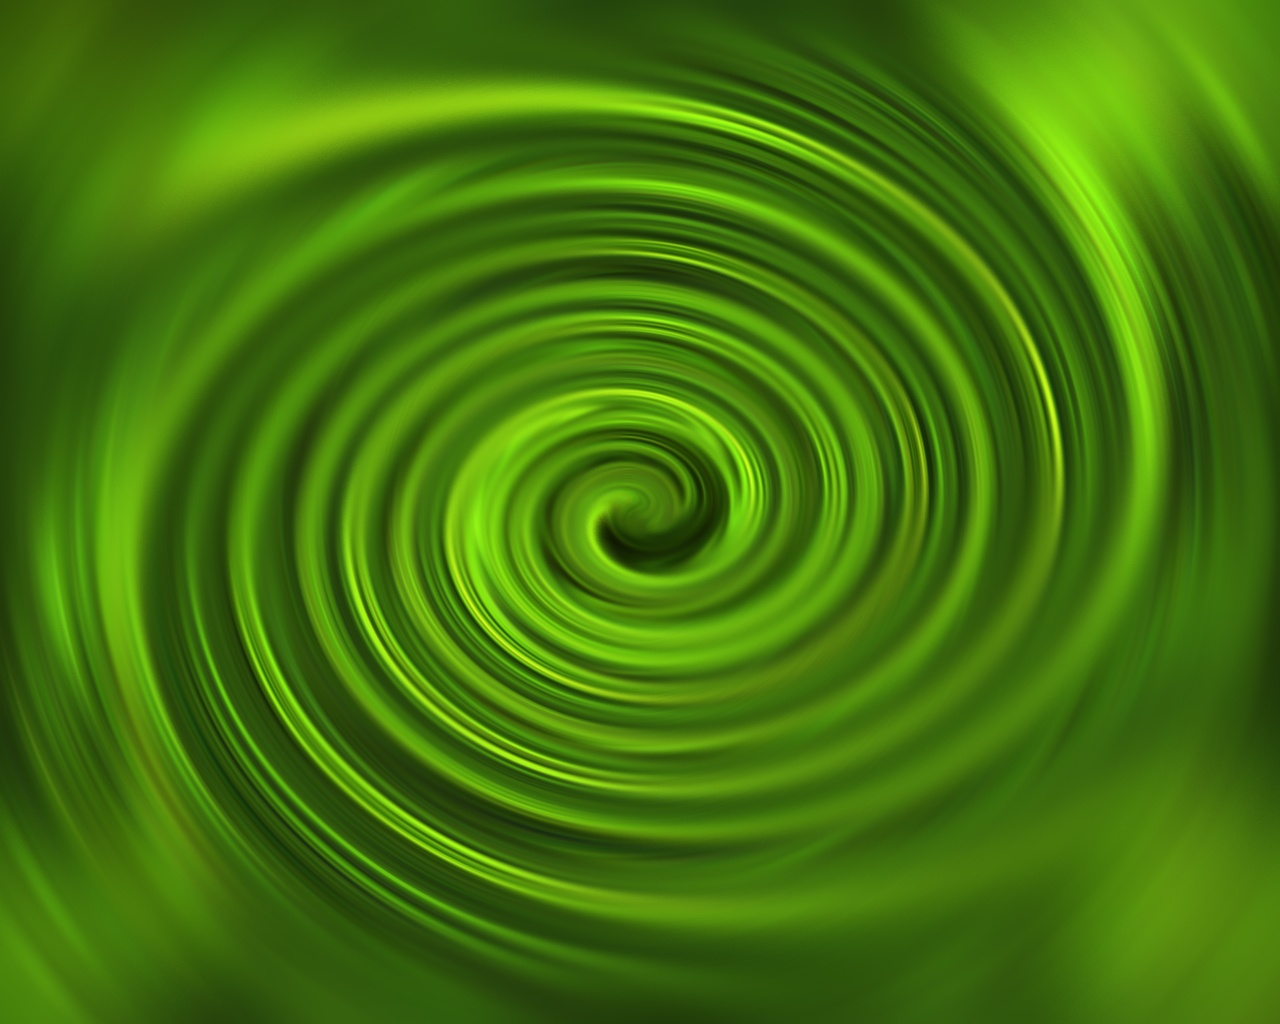 Green Swirl Wallpaper